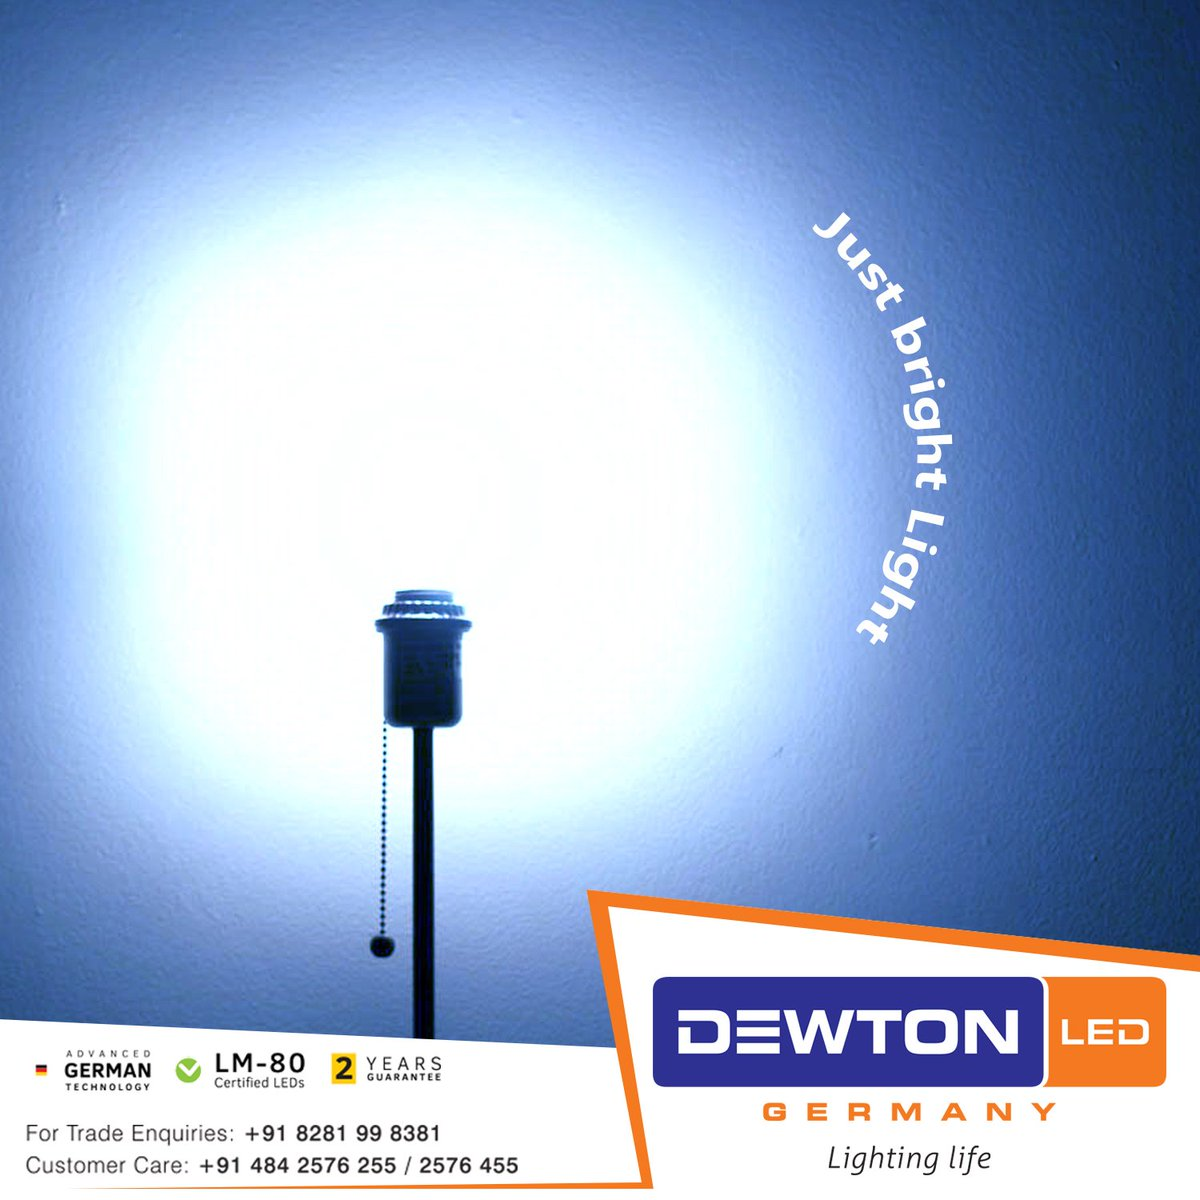 Start using DewtonLED and reduce your electricity bill.. #DewtonLED #LED #Kerala #Kochi #MondayMotivation  #MondayMorning #mondaythoughts